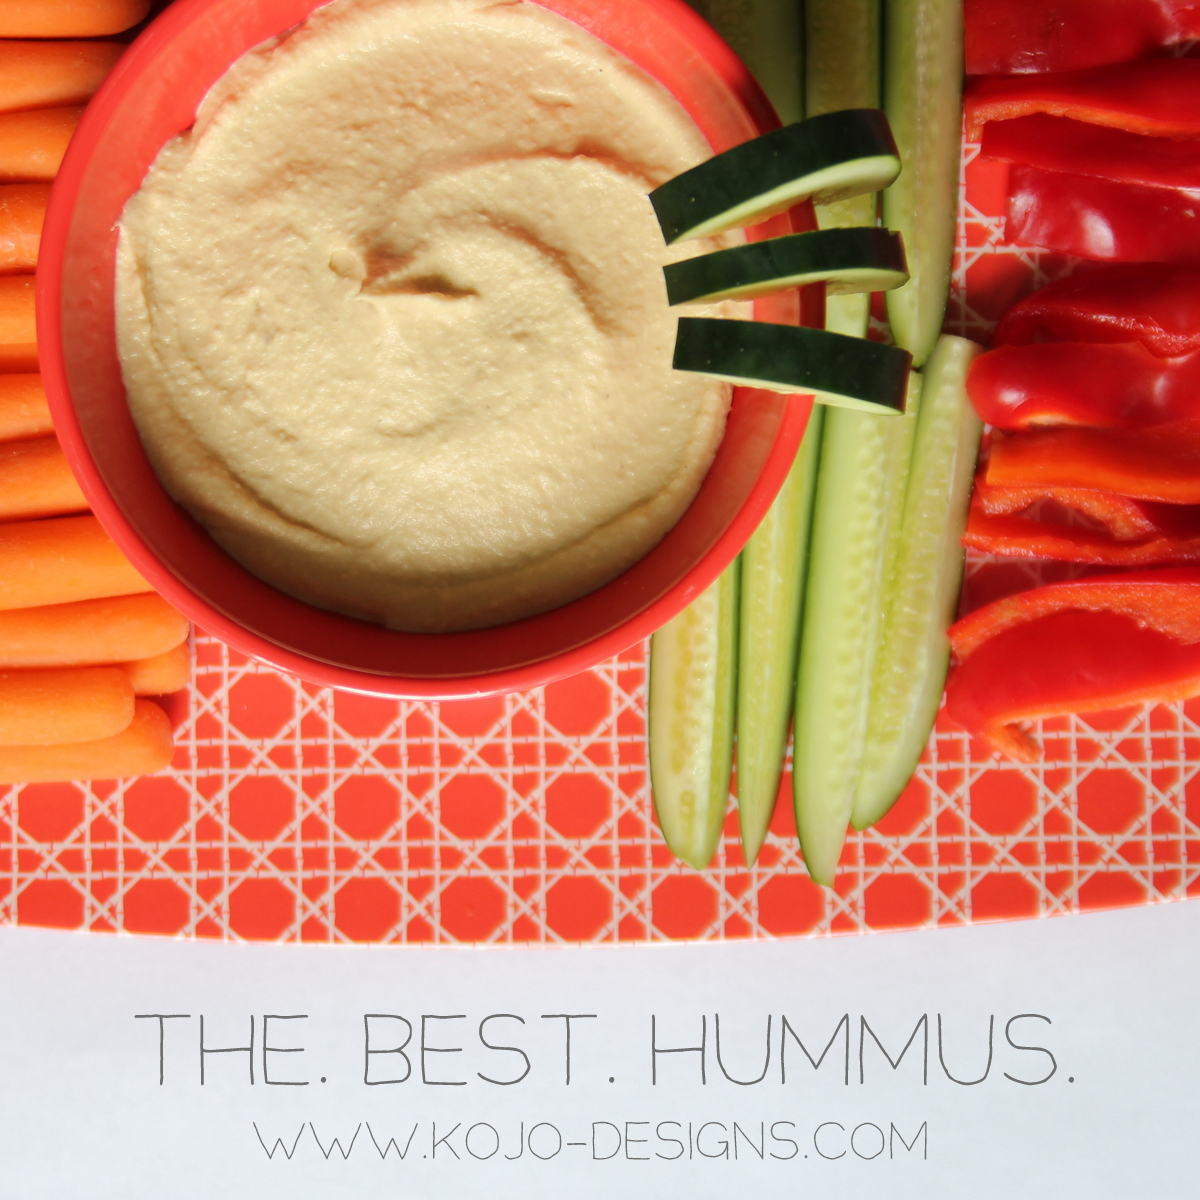 the best hummus recipe- brought straight from her sister's days living in the middleeast